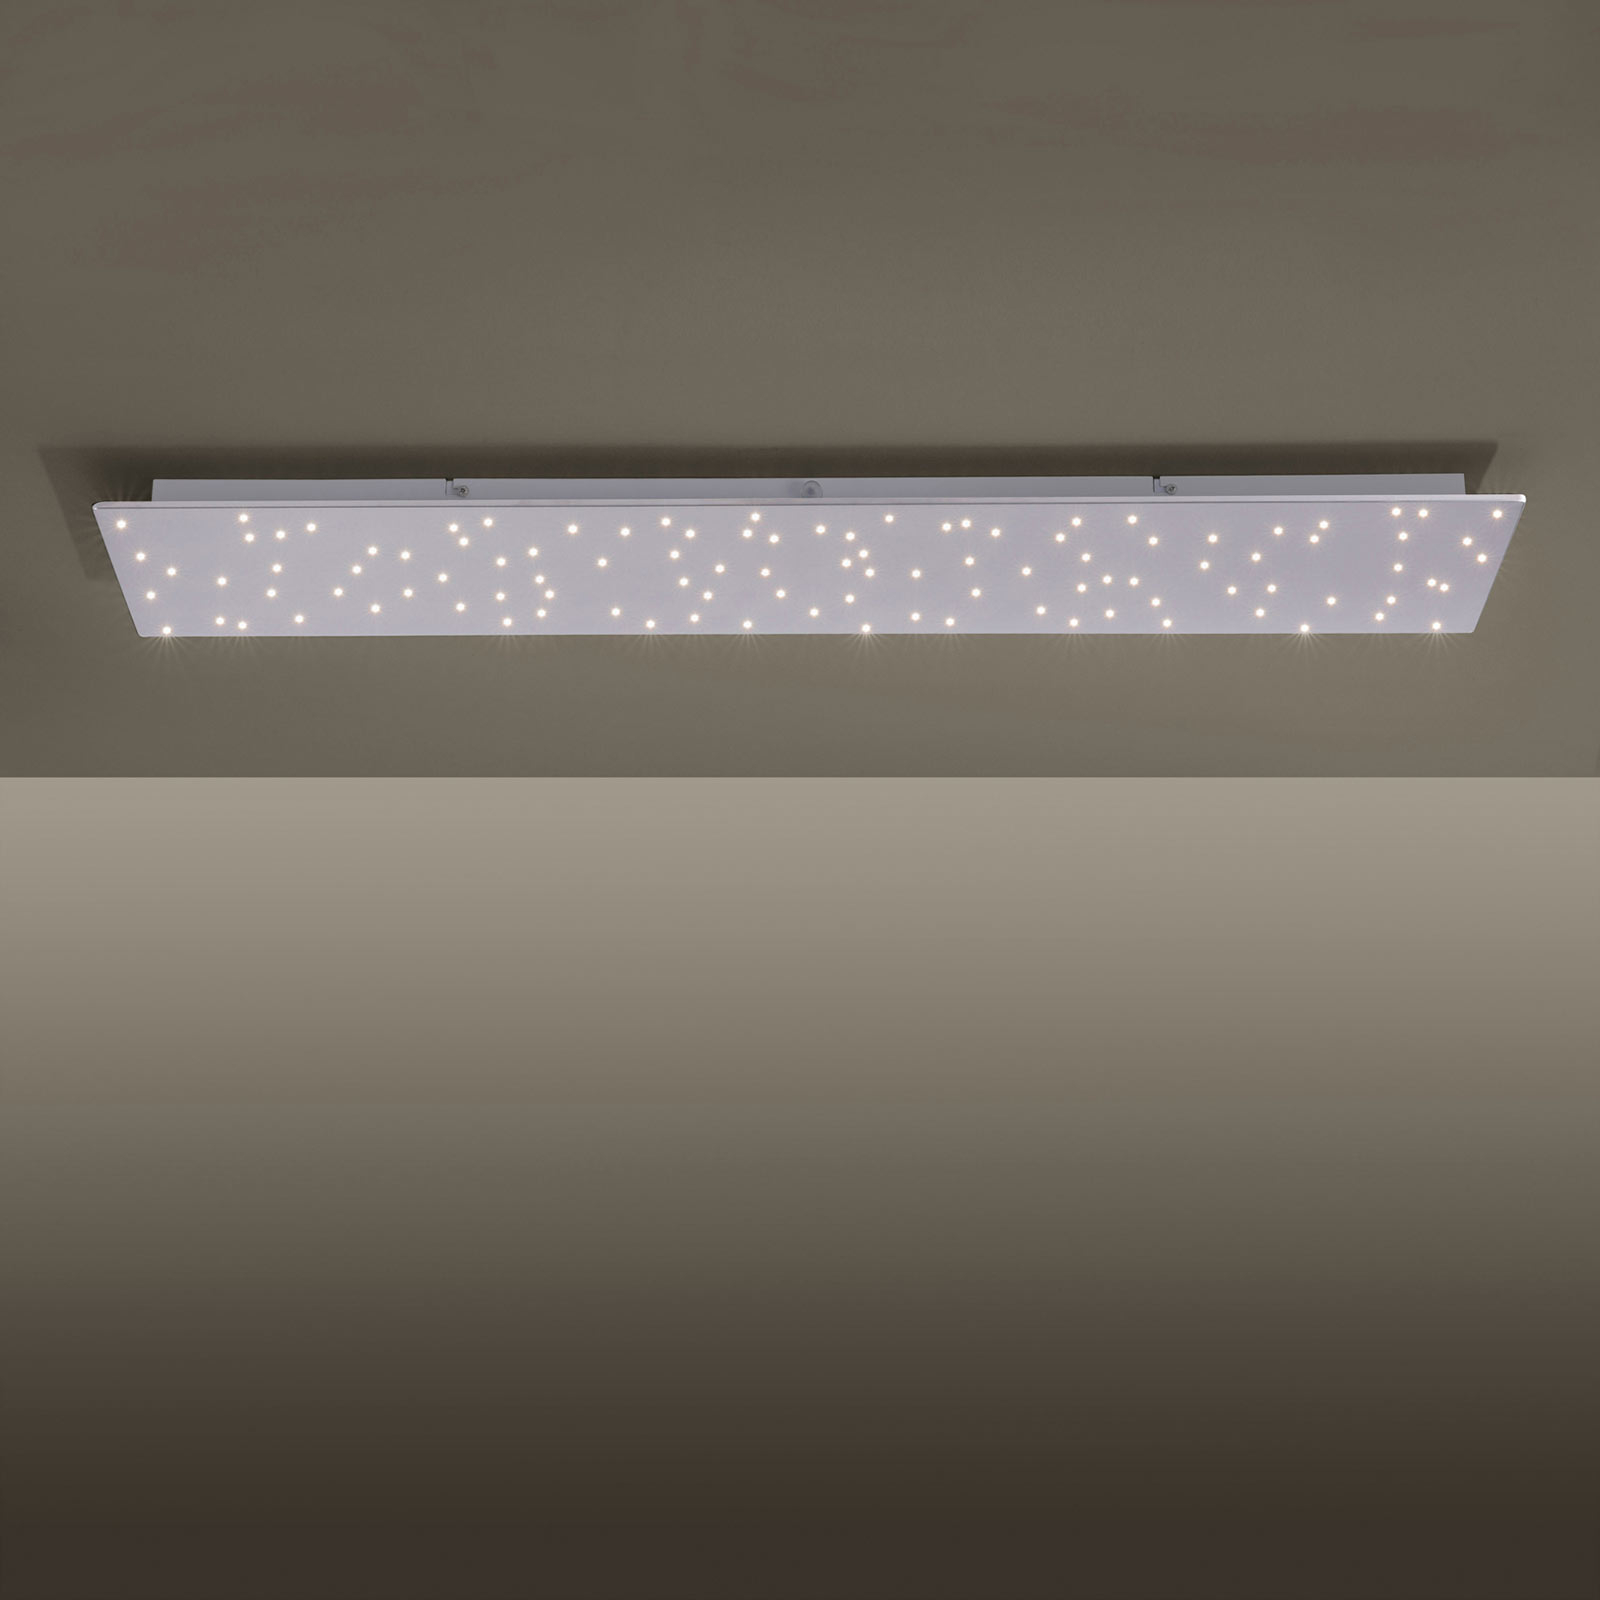 Lampa sufitowa LED Sparkle, tunable white 100x25cm